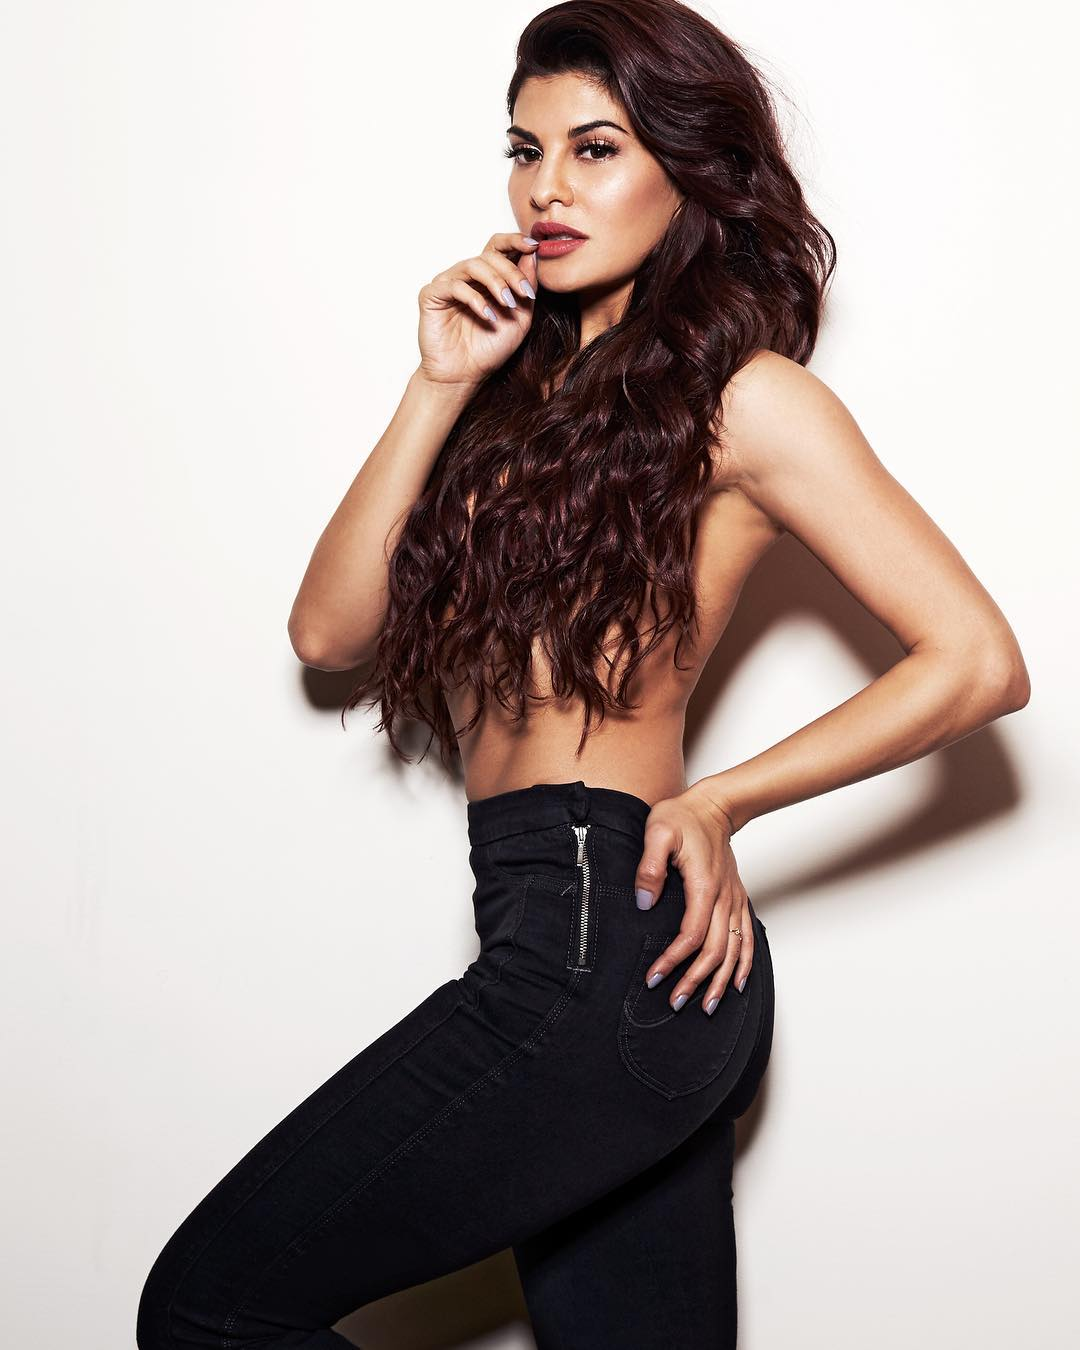 Hot As Hell: Jacqueline Fernandez Topless Photoshoot Is Too Hot To Handle